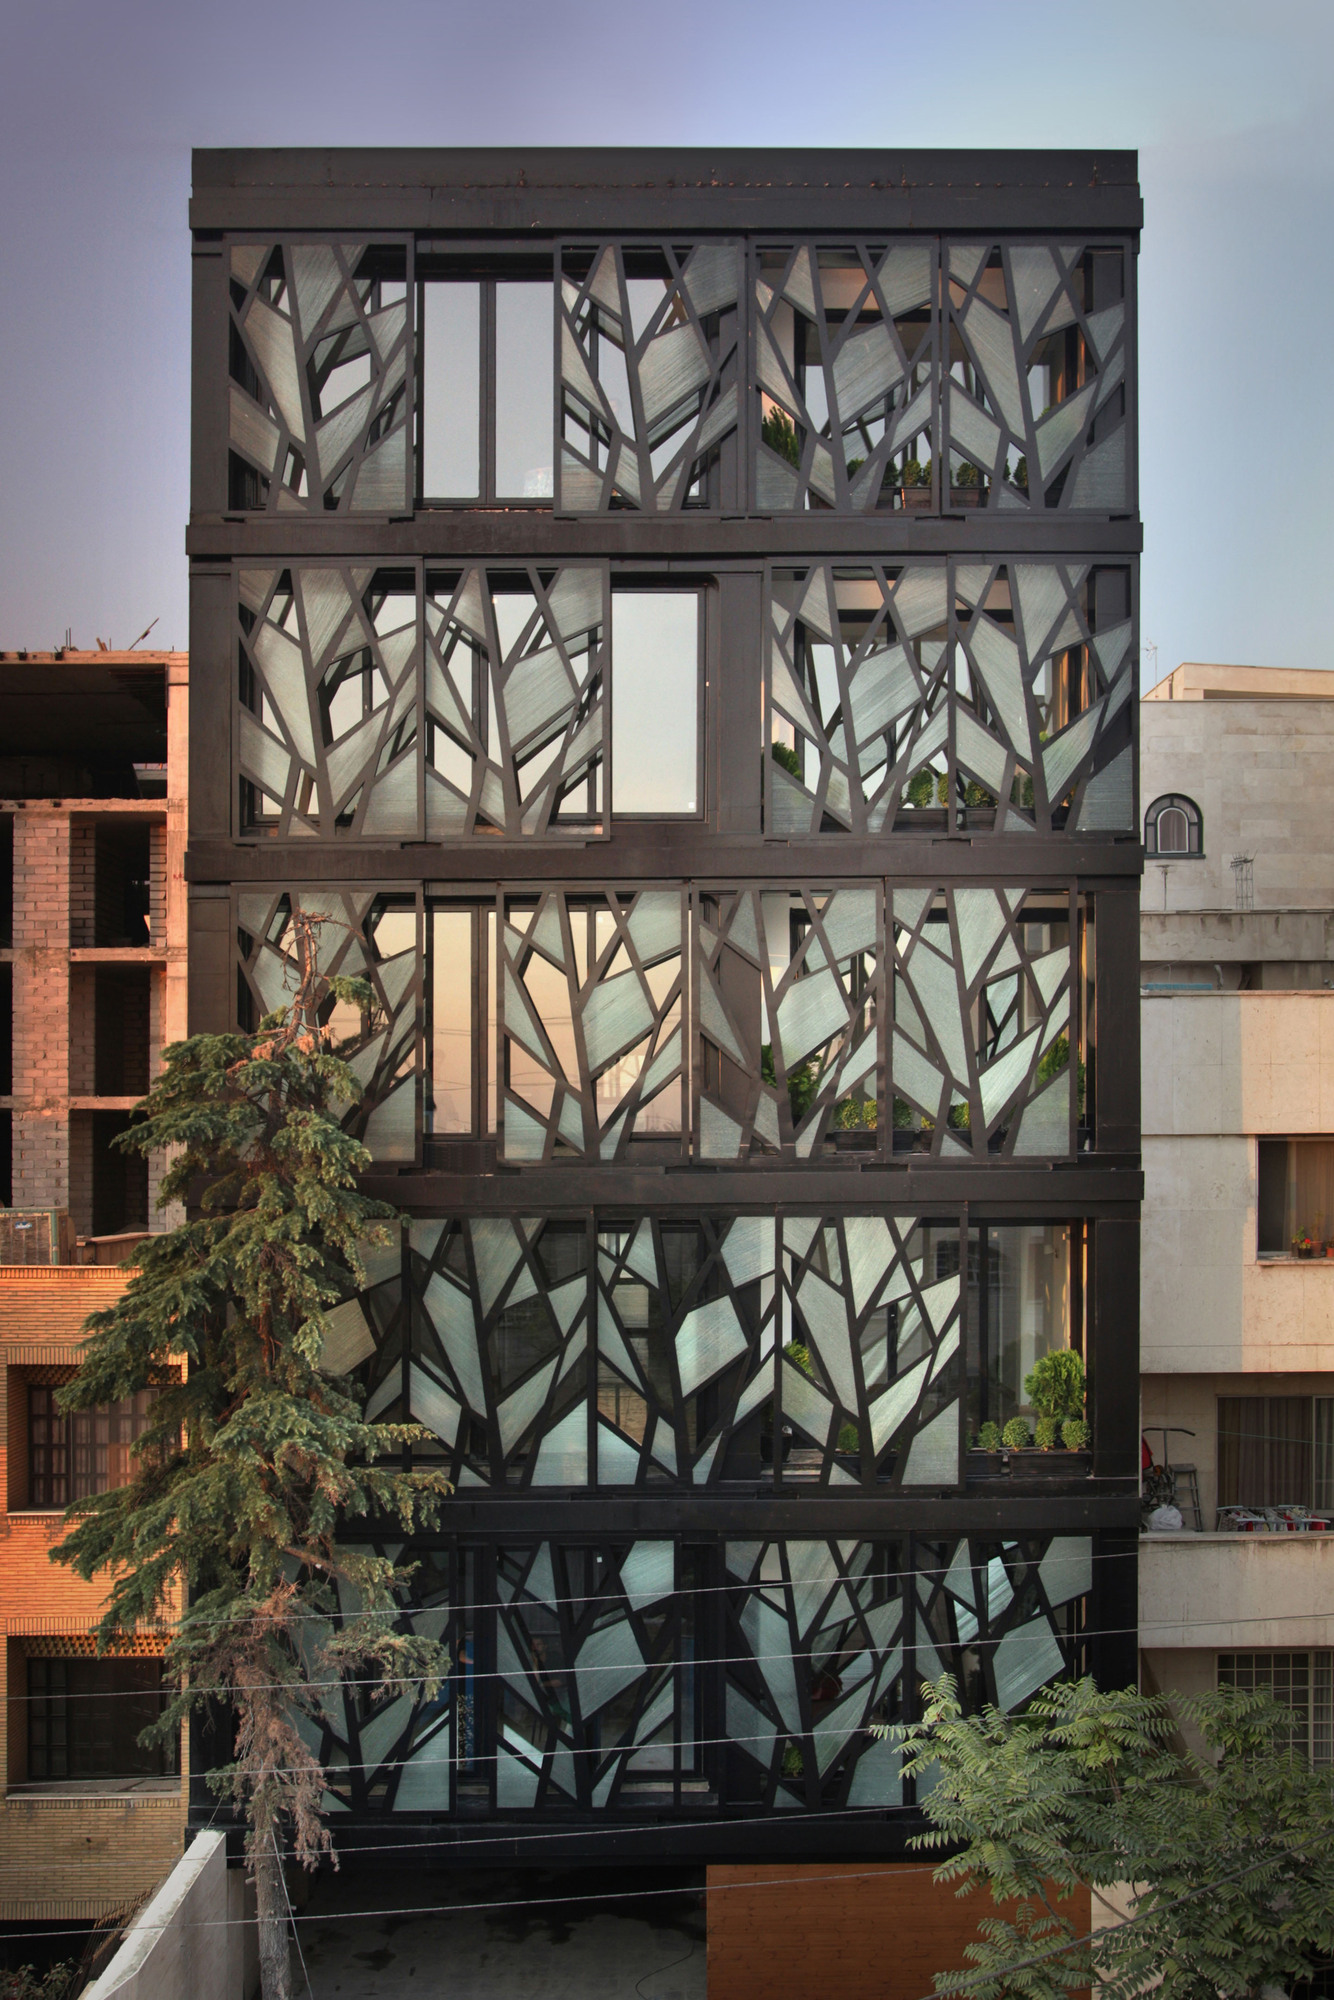 main facade of a building Designed to Express Our Irrepressible Desire danial building reza sayadian and sara kalantary homesthetics (10)